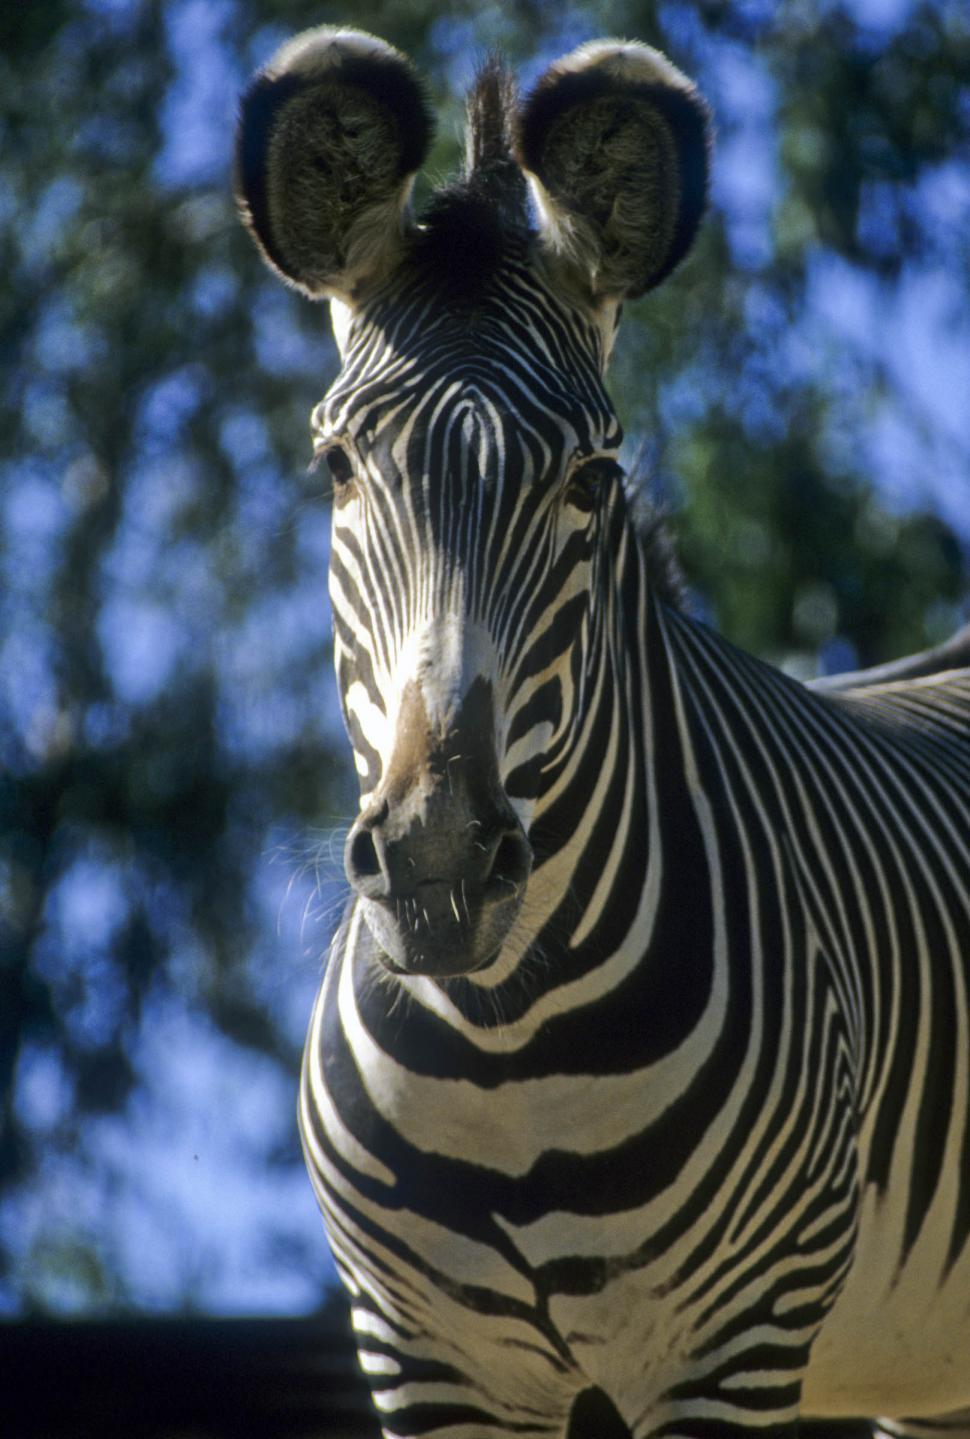 Download Free Stock HD Photo of curious zebra Online